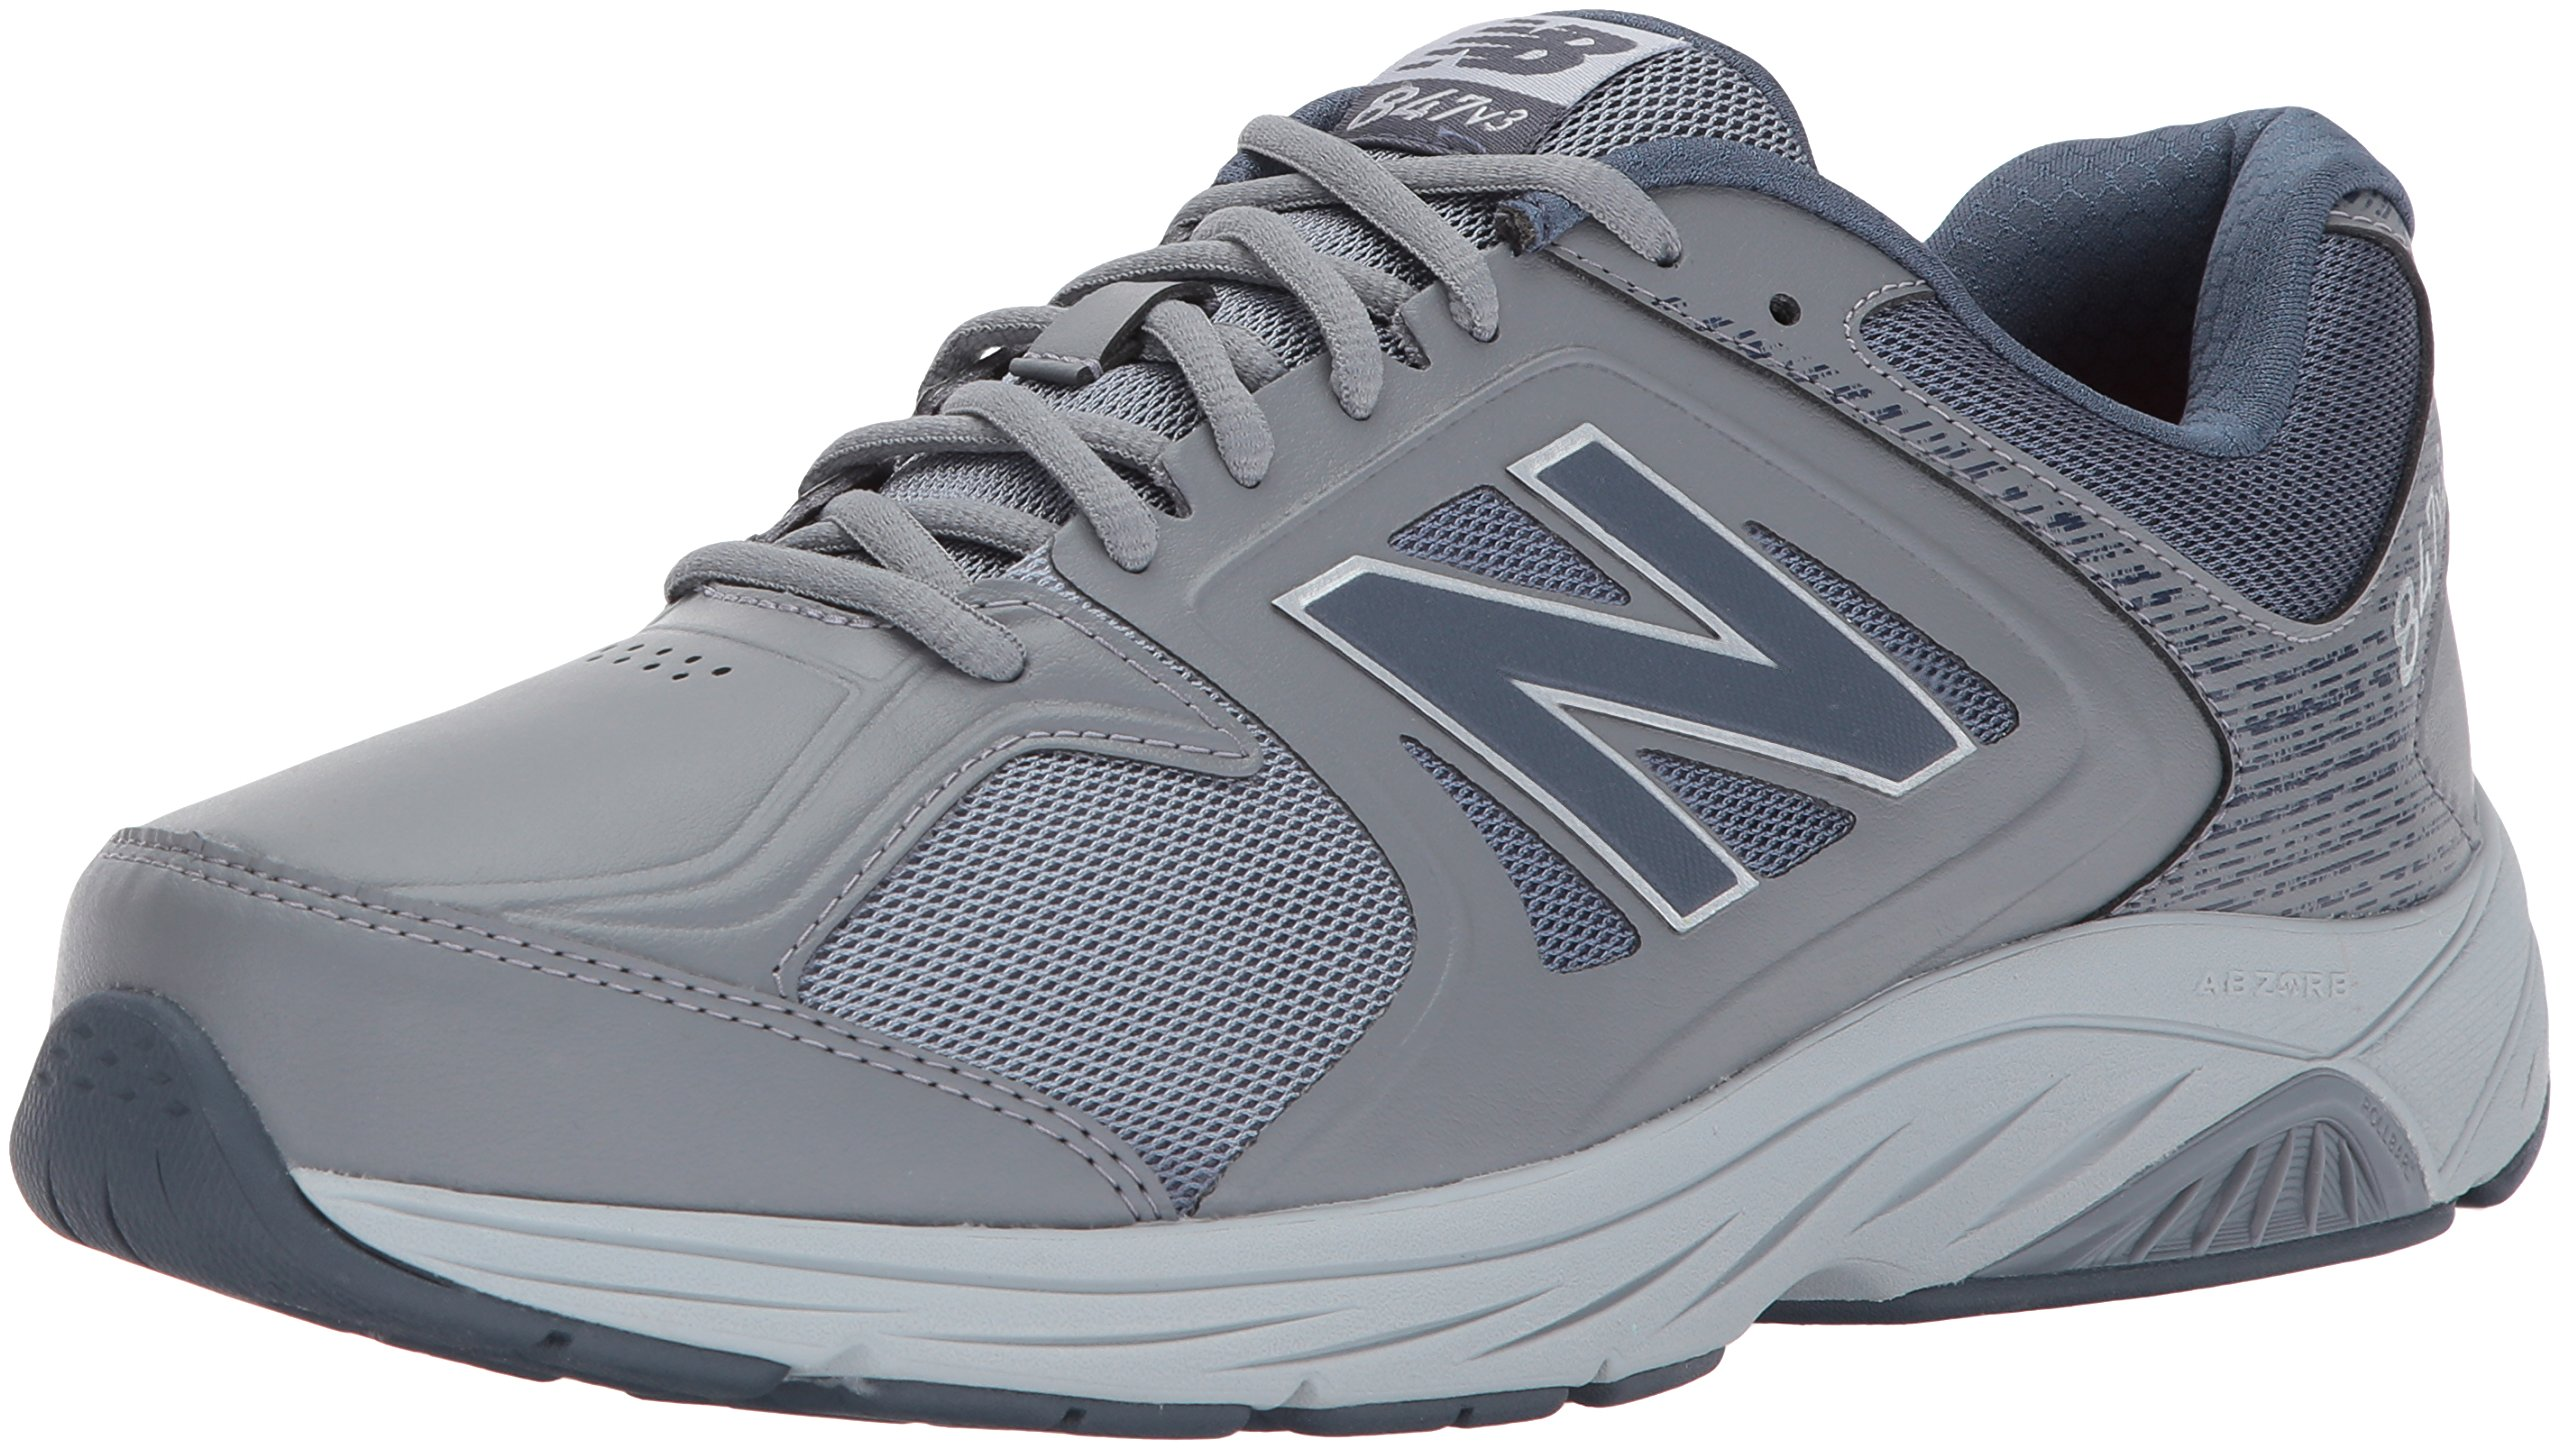 New Balance Men's 847V3 Walking Shoe, Grey, 12.5 D US